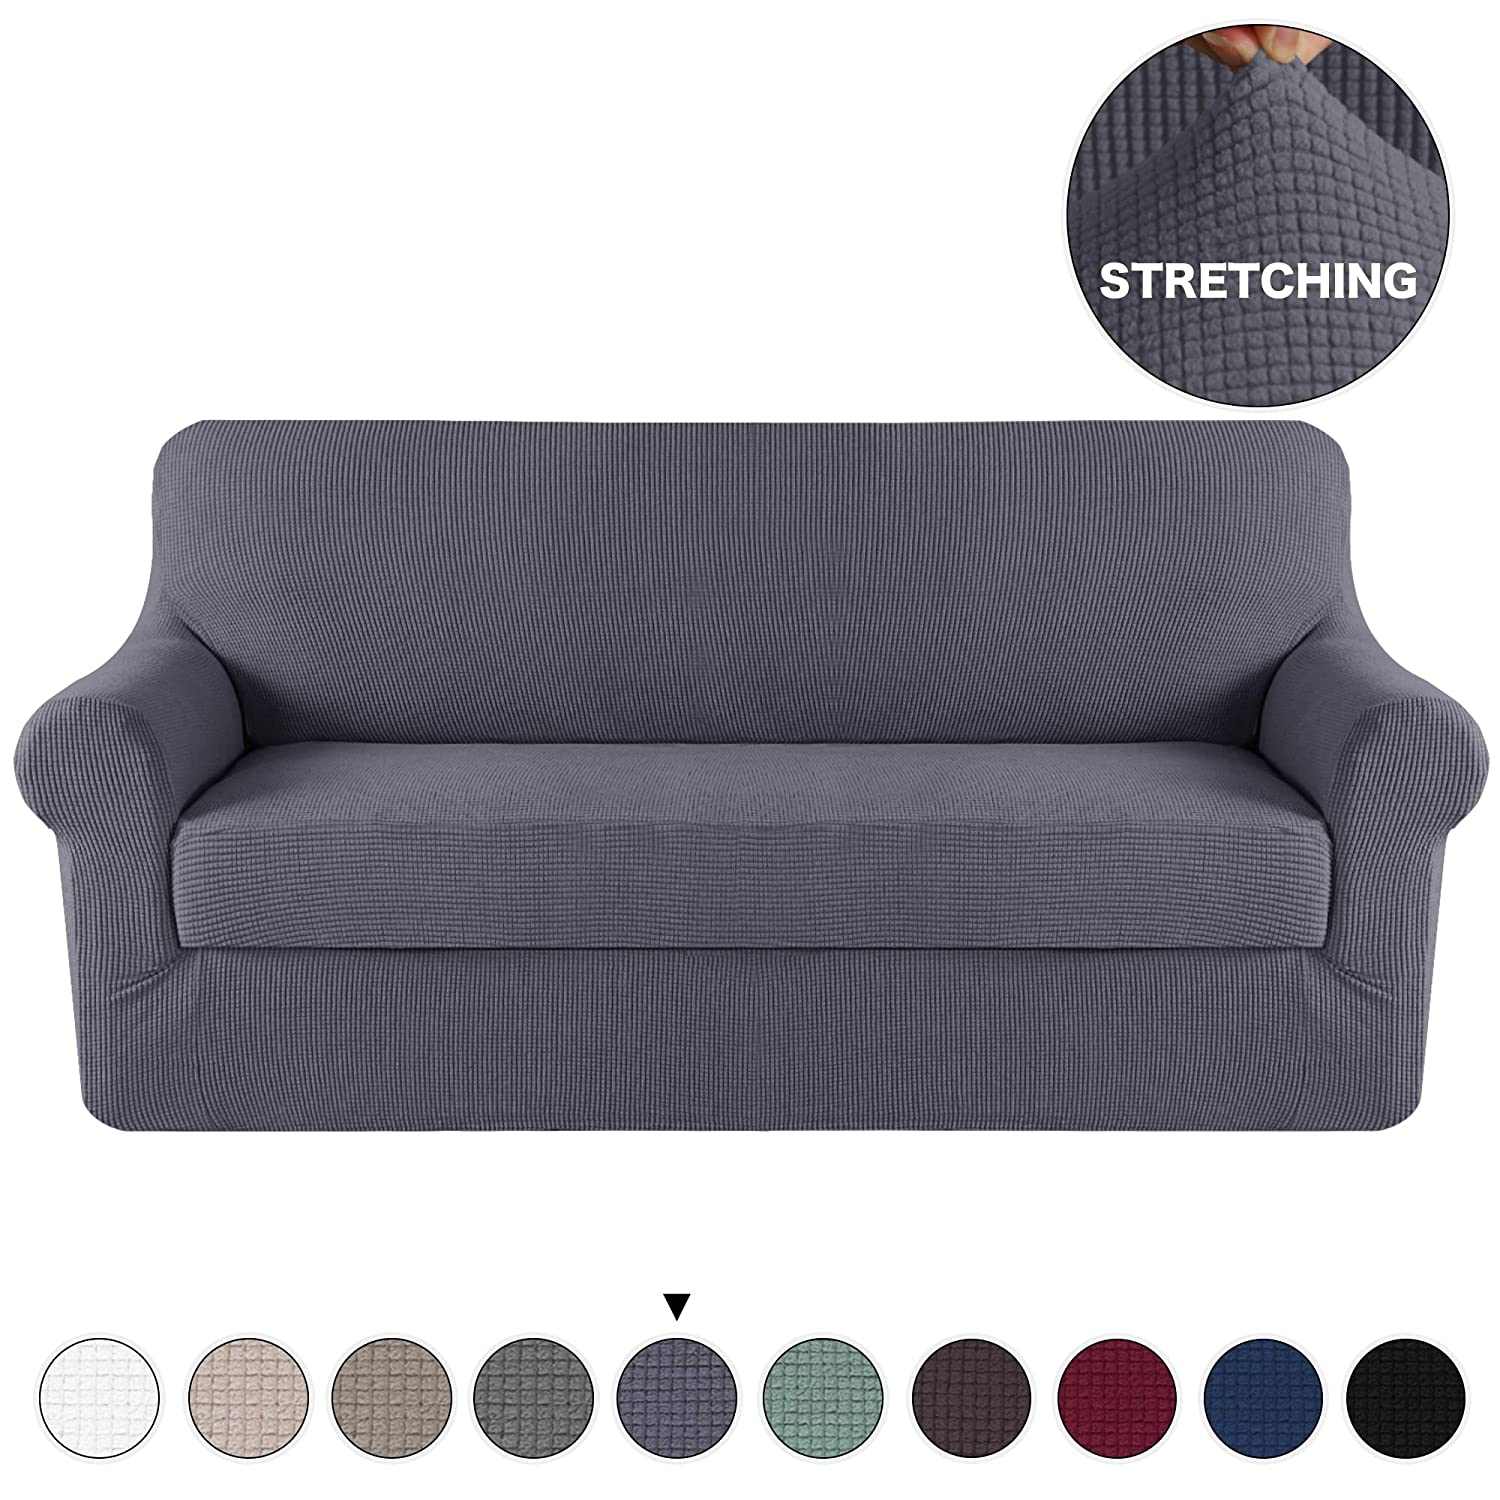 Turquoize grey sofa slipcover stretch high spandex sofa cover lounge covers couch covers furniture covers for 3 seater cushion cover stretch 2 piece with